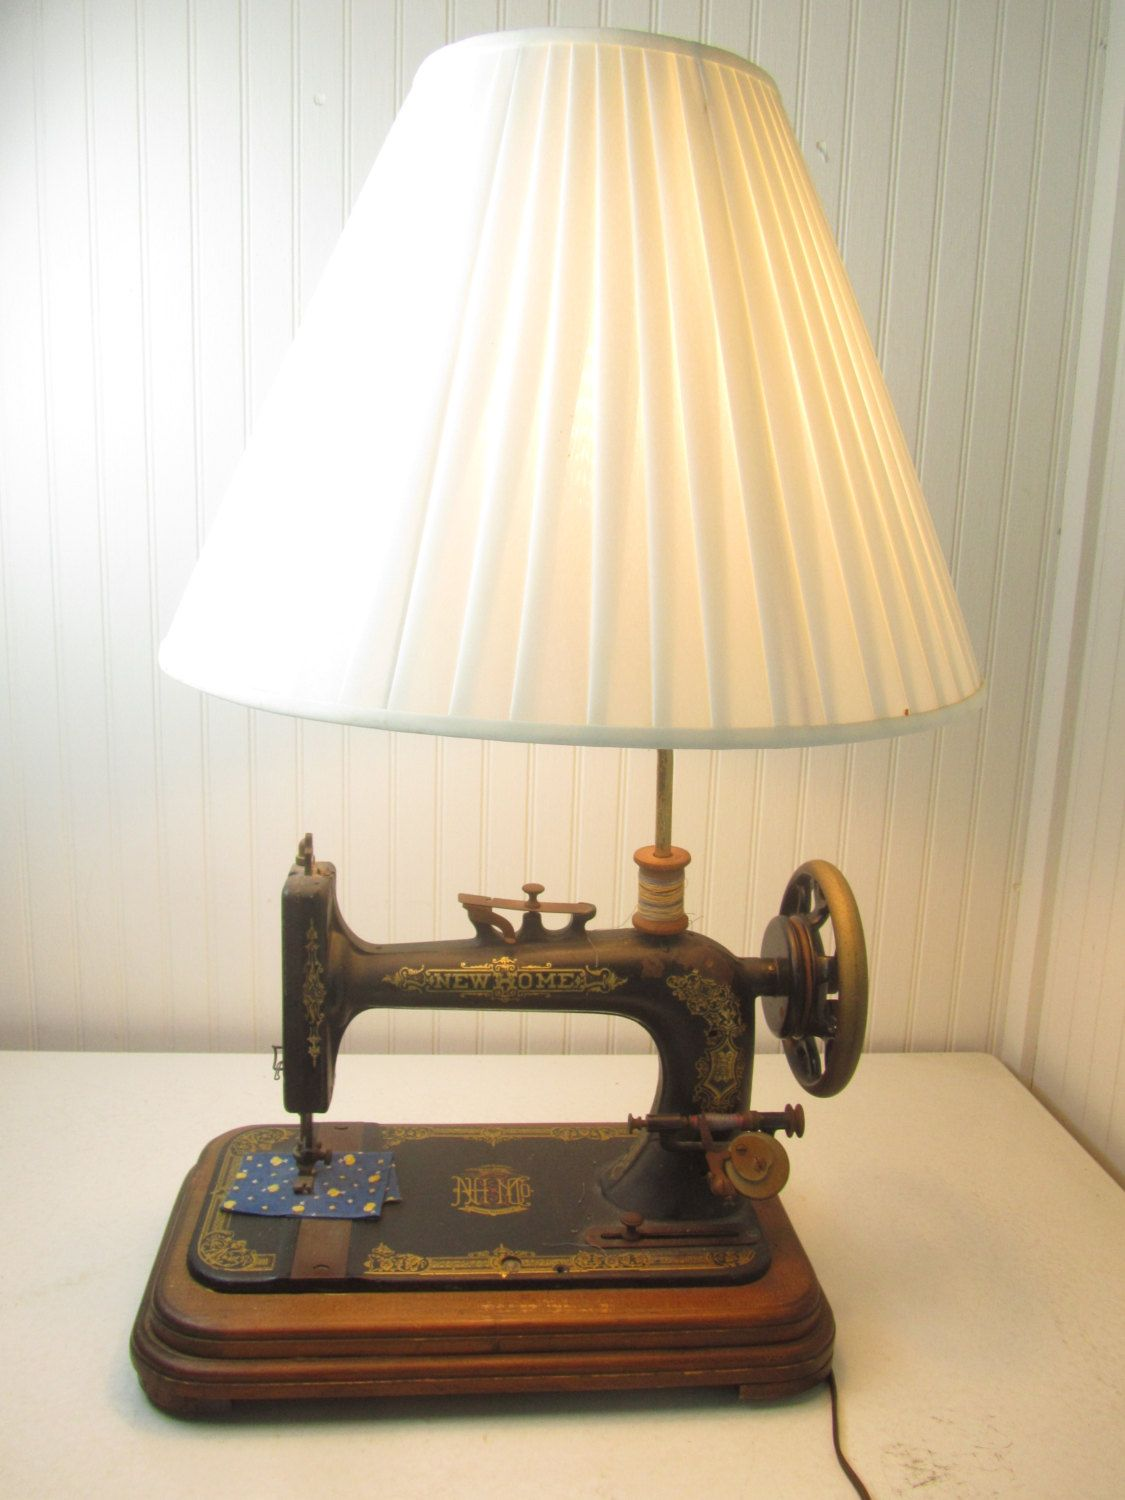 Sewing machine lamp vintage lamp table lamp new home sewing sewing machine lamp vintage lamp table lamp new home sewing machine aloadofball Image collections